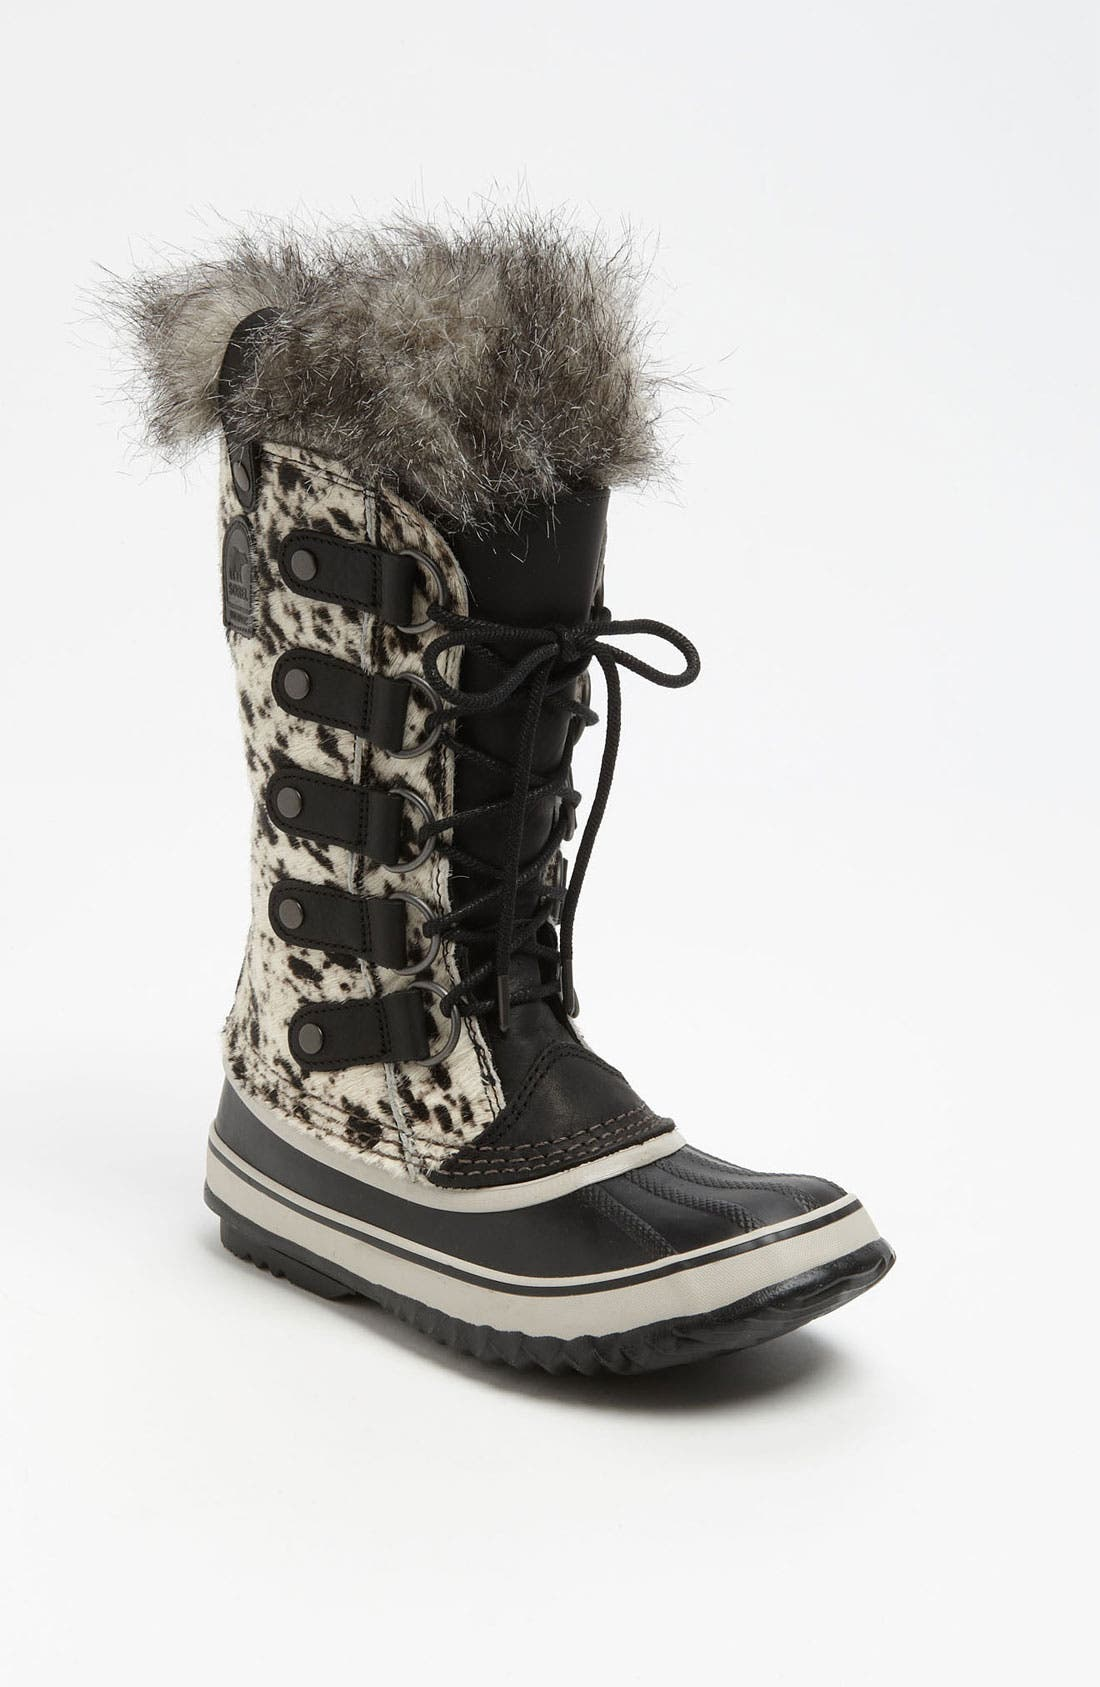 Alternate Image 1 Selected - SOREL 'Joan of Arctic Reserve' Boot